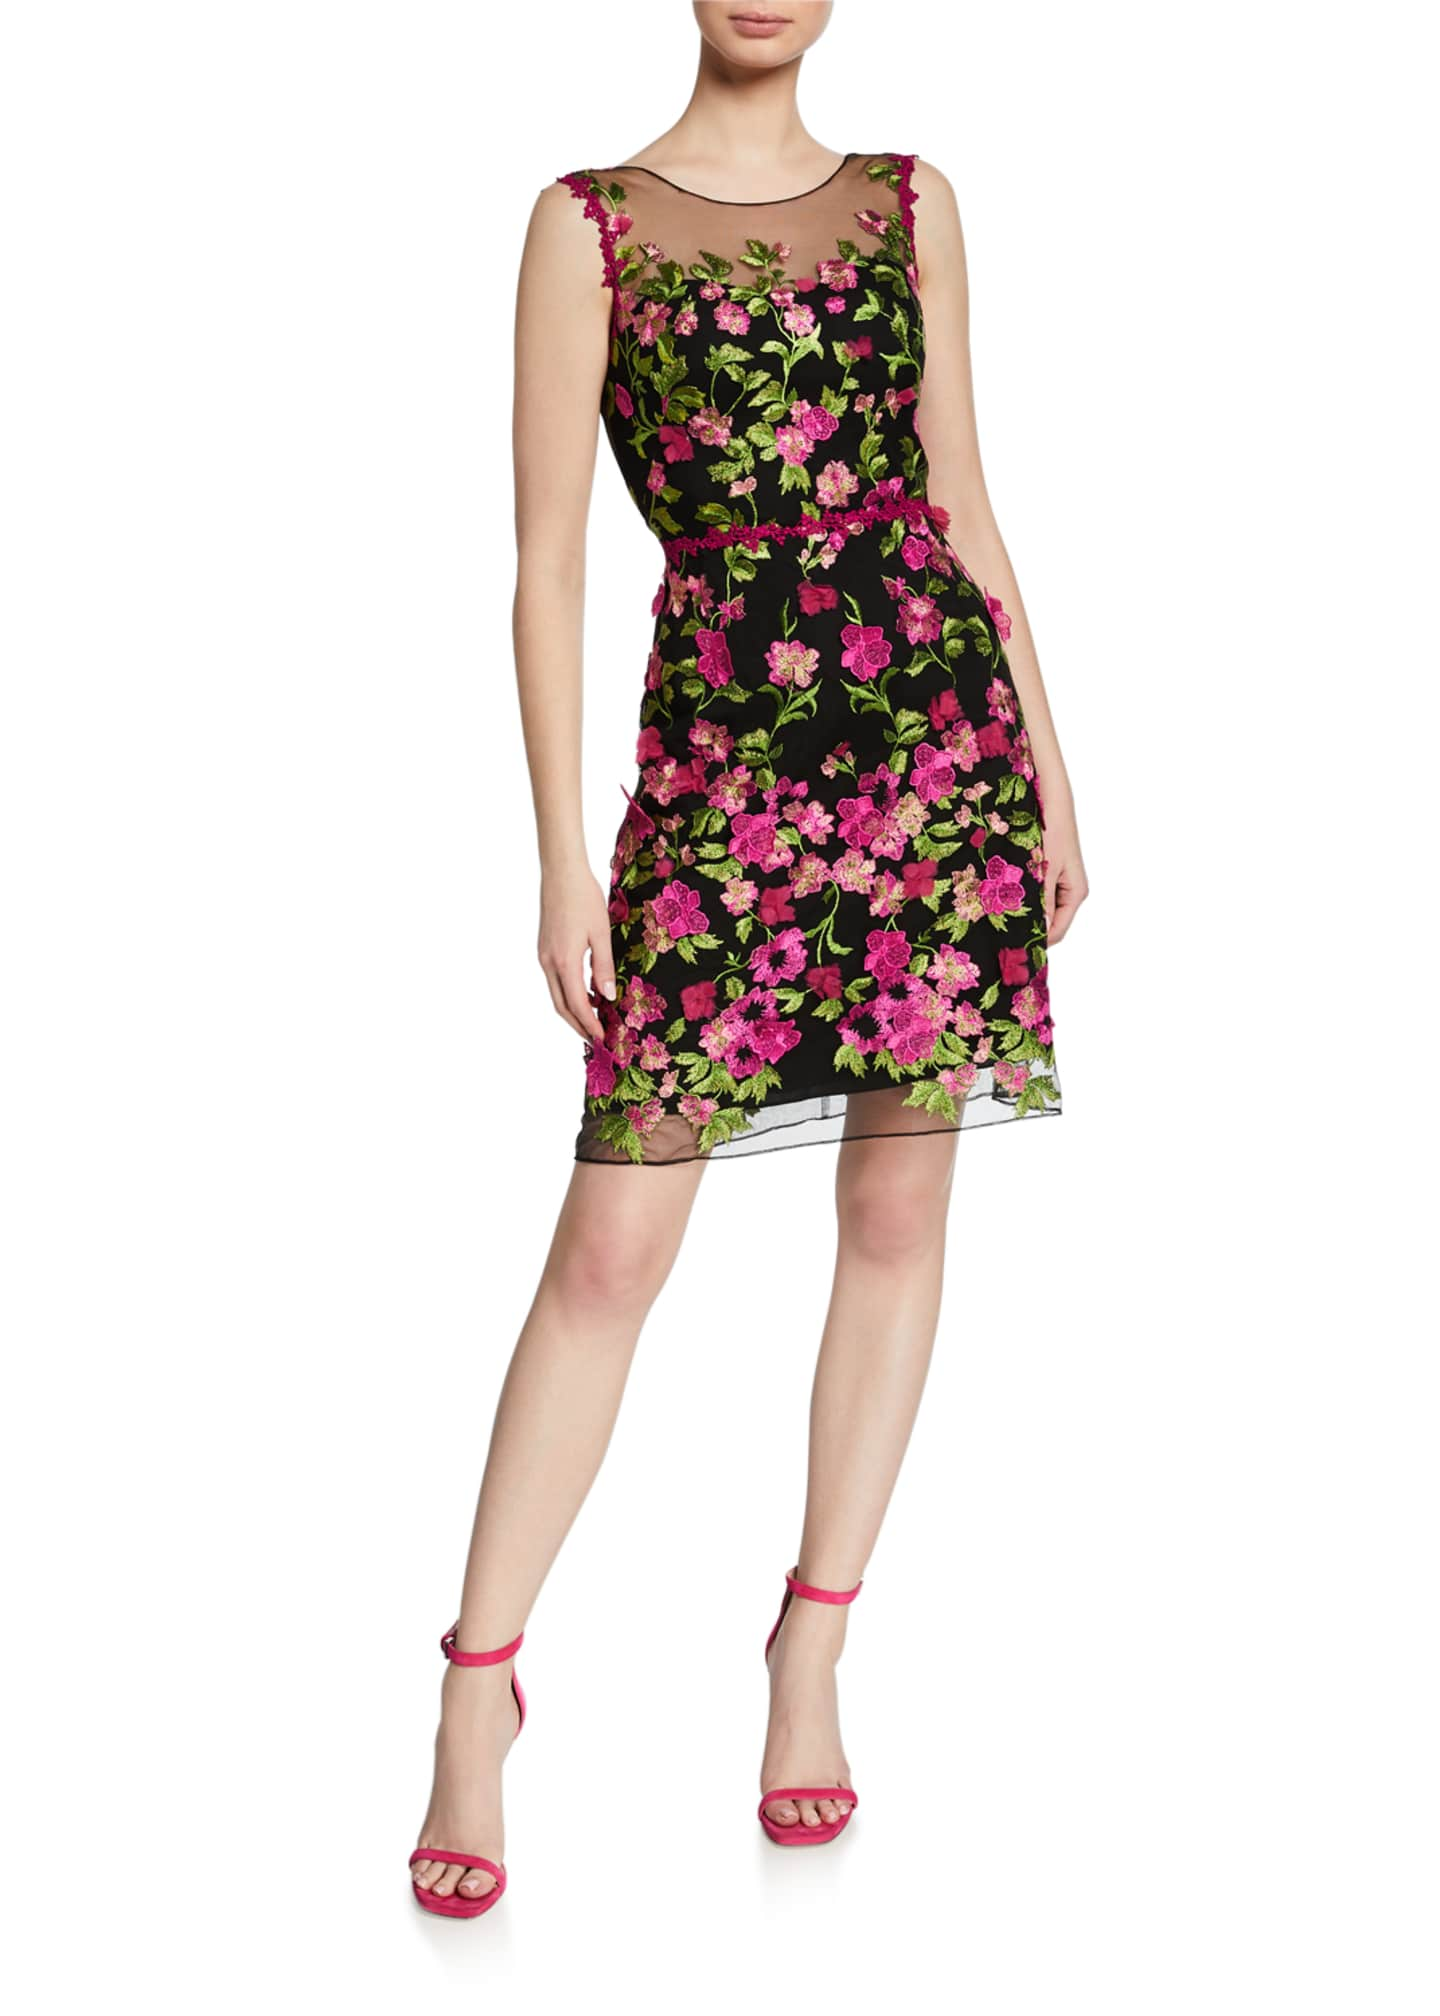 Marchesa Notte Embroidered Sleeveless Cutout Dress with 3D